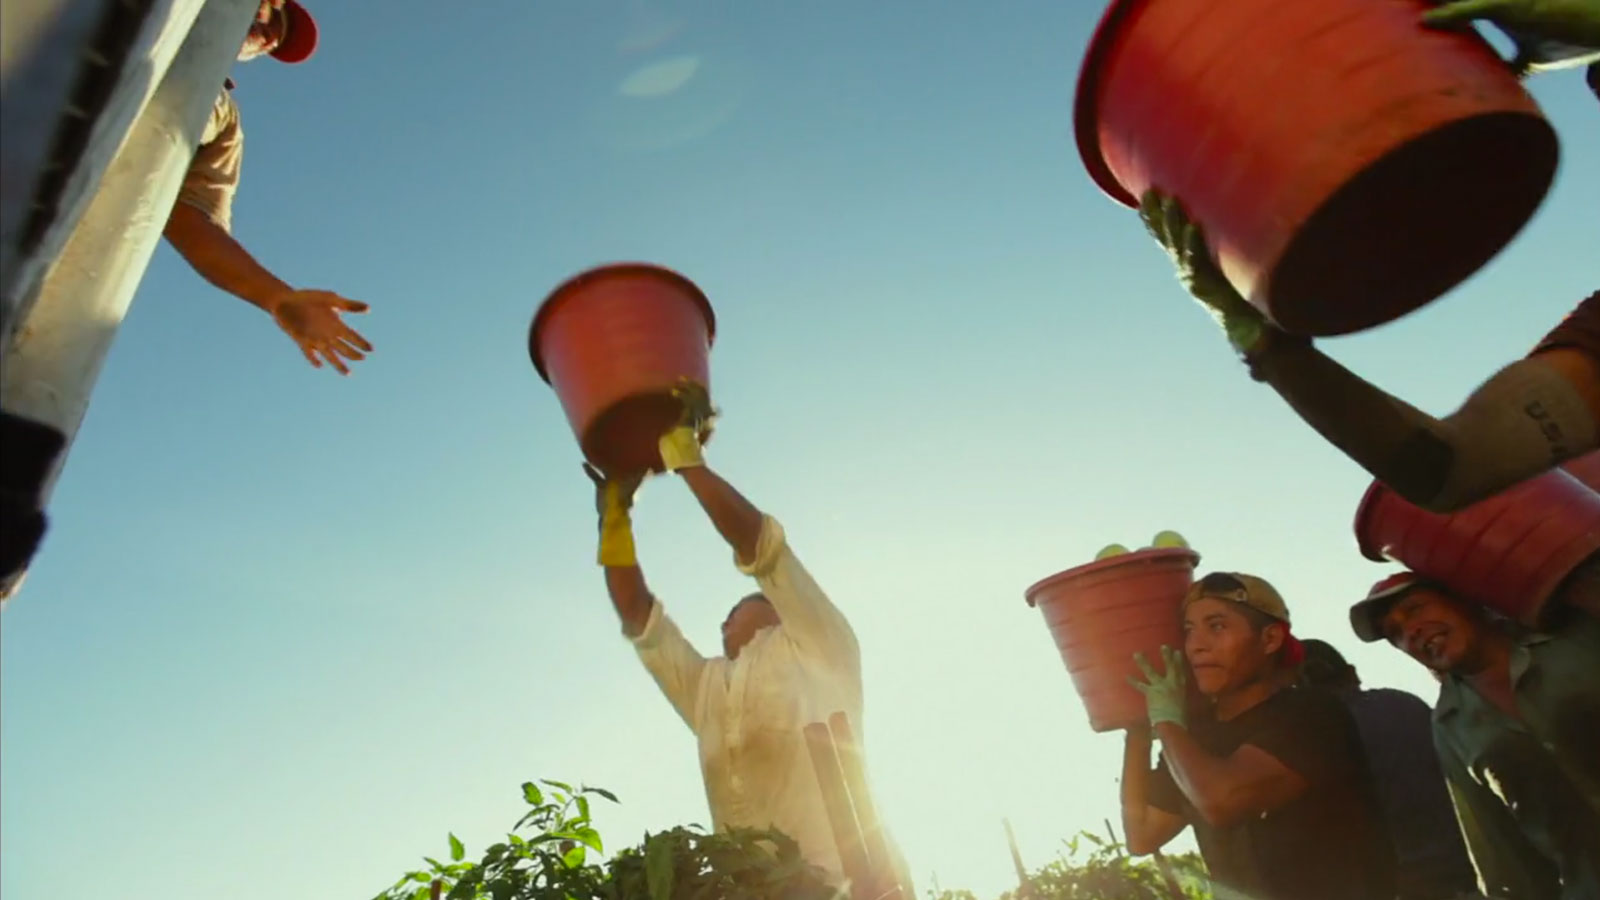 A shot of farm workers from the documentary